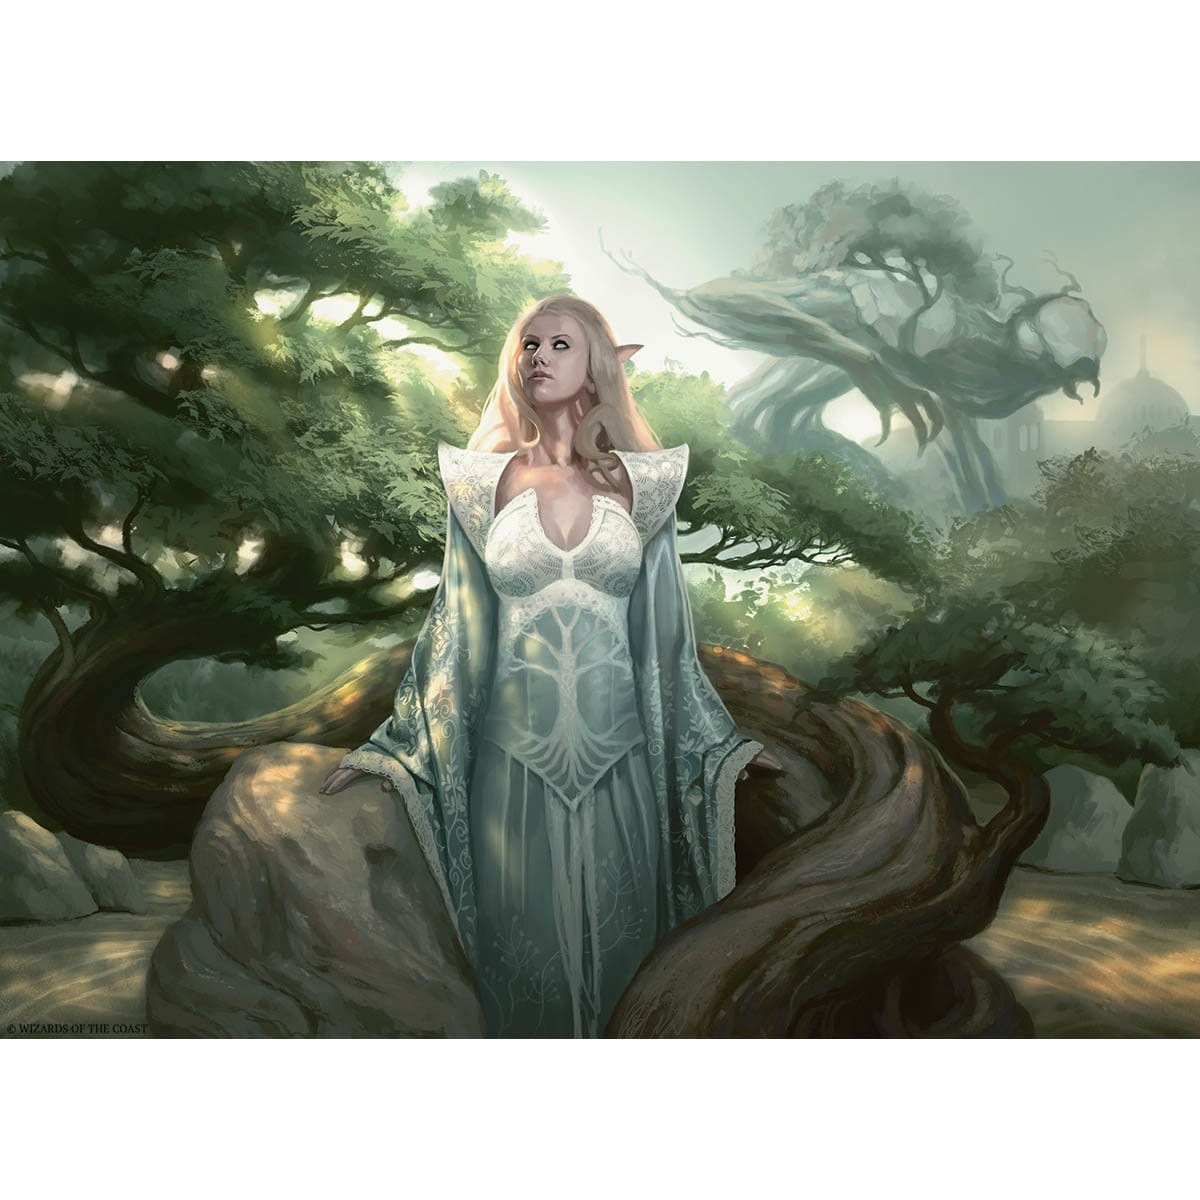 Emmara Tandris Print - Print - Original Magic Art - Accessories for Magic the Gathering and other card games